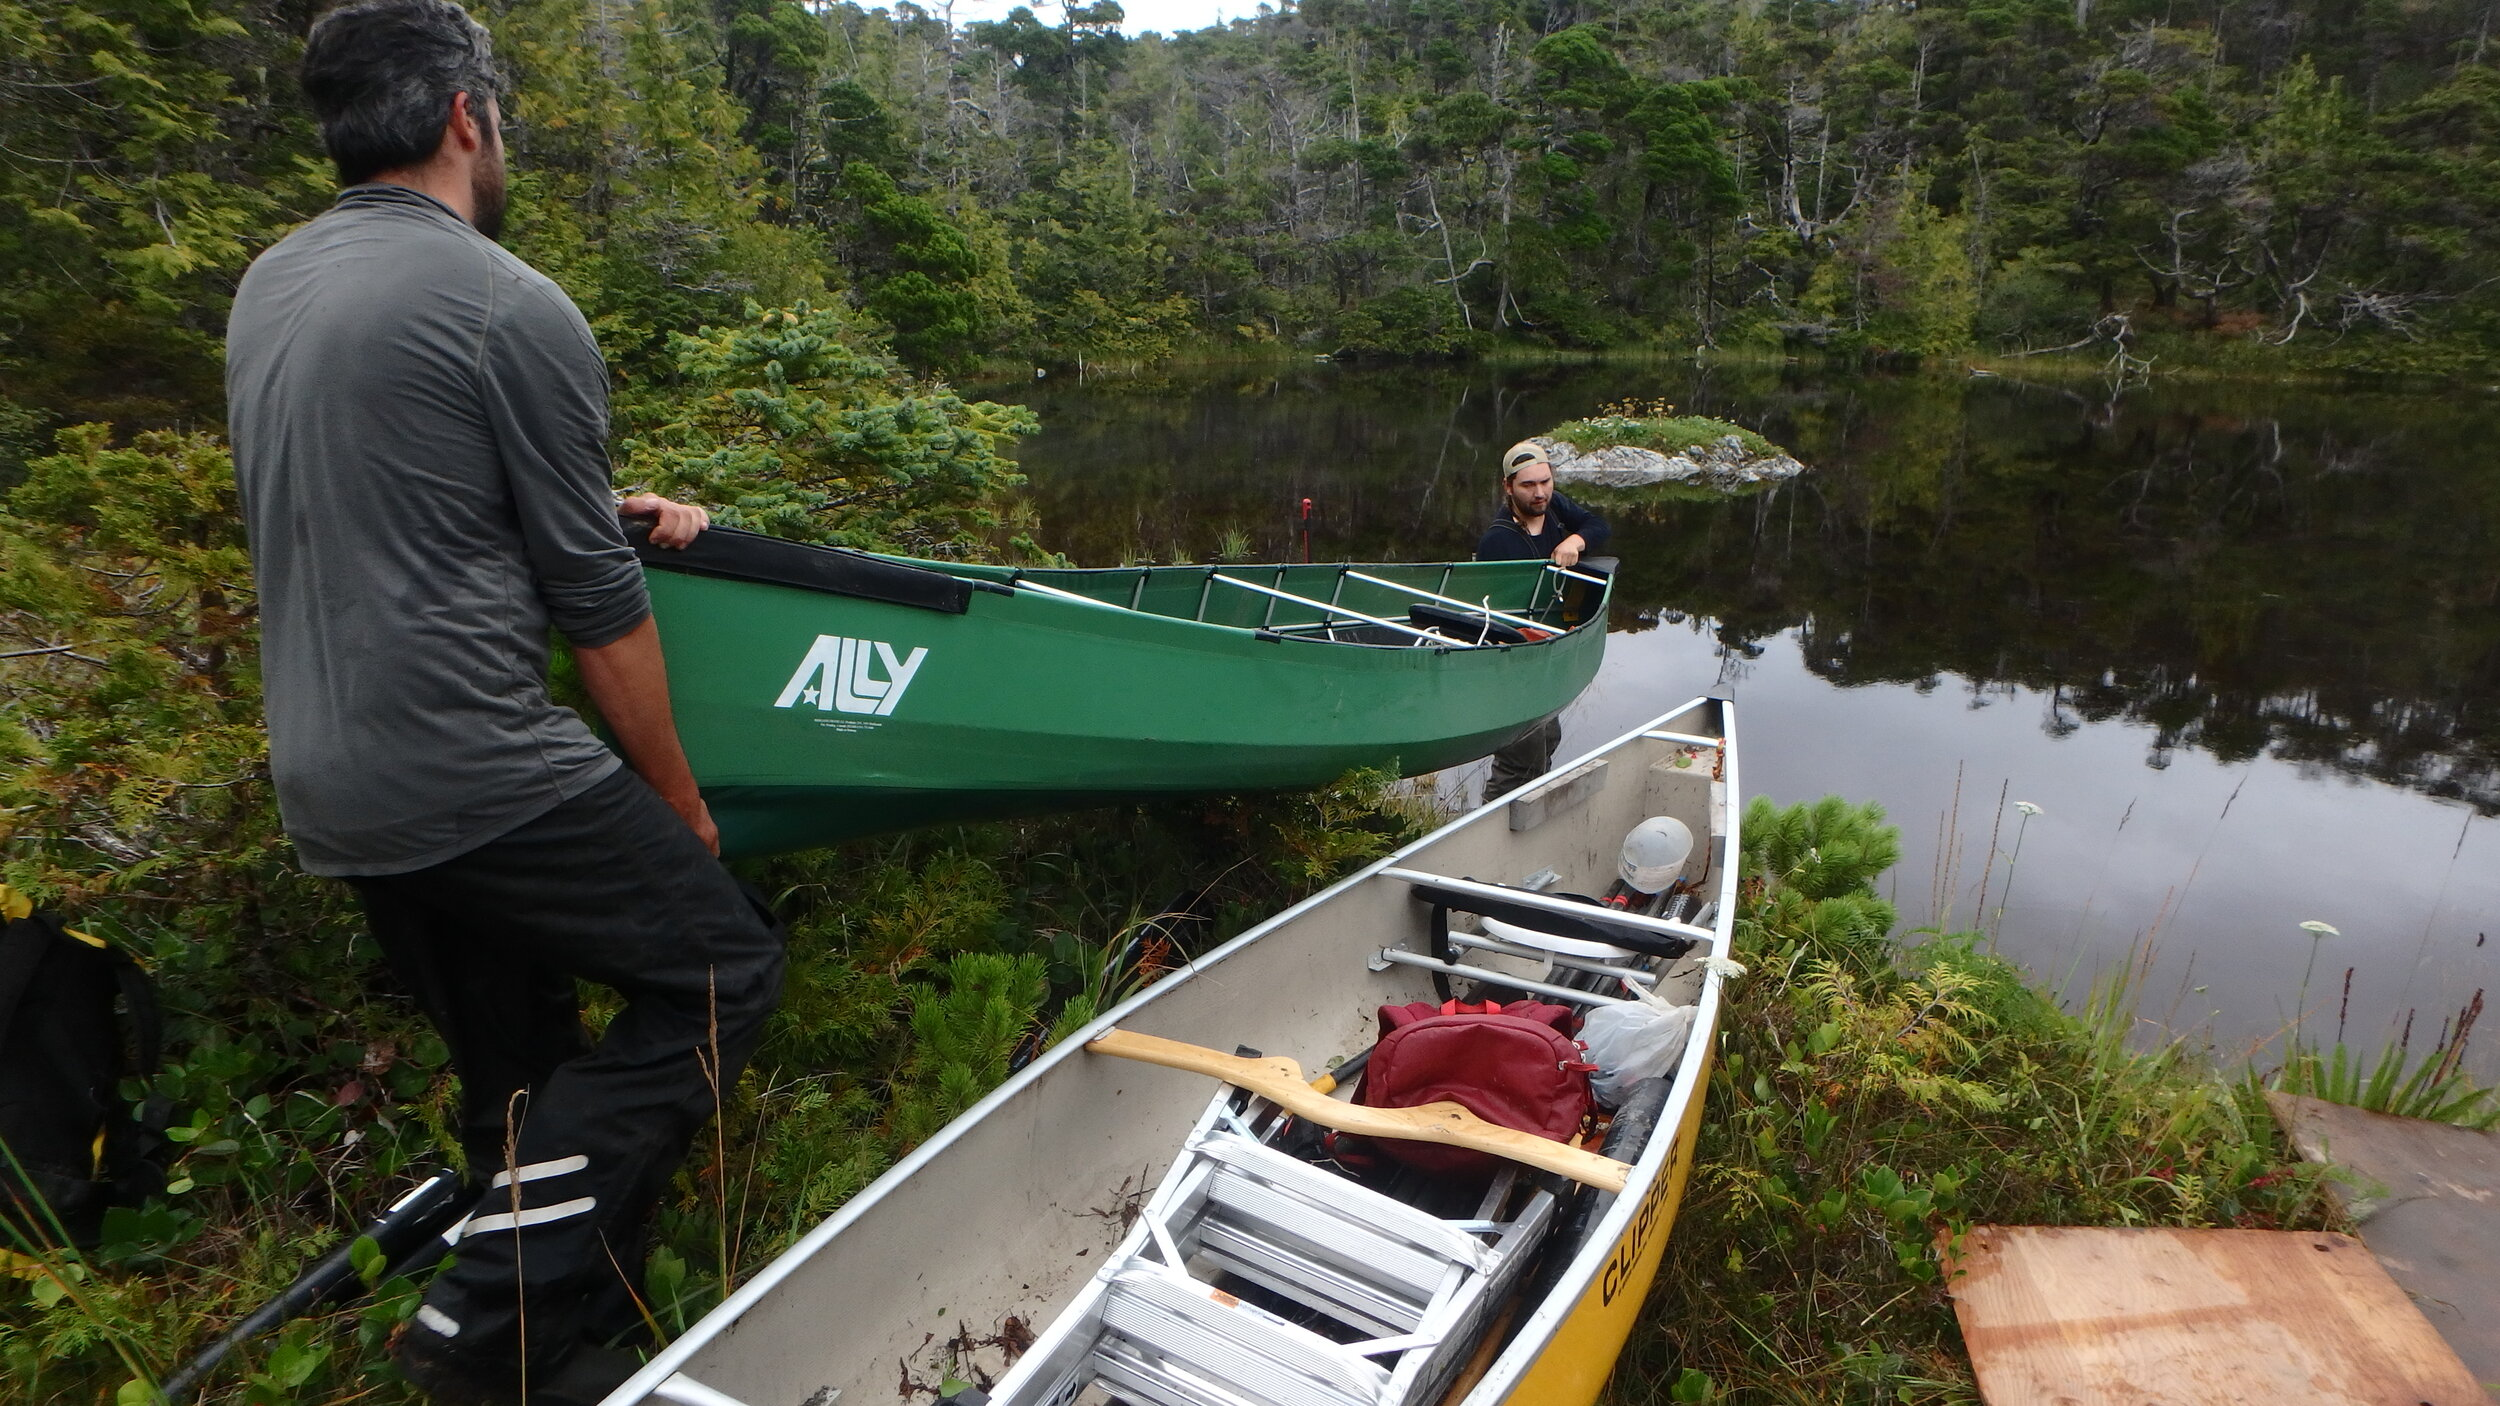 Often we had to portage our canoes and gear through the forest to get to the ponds for coring.